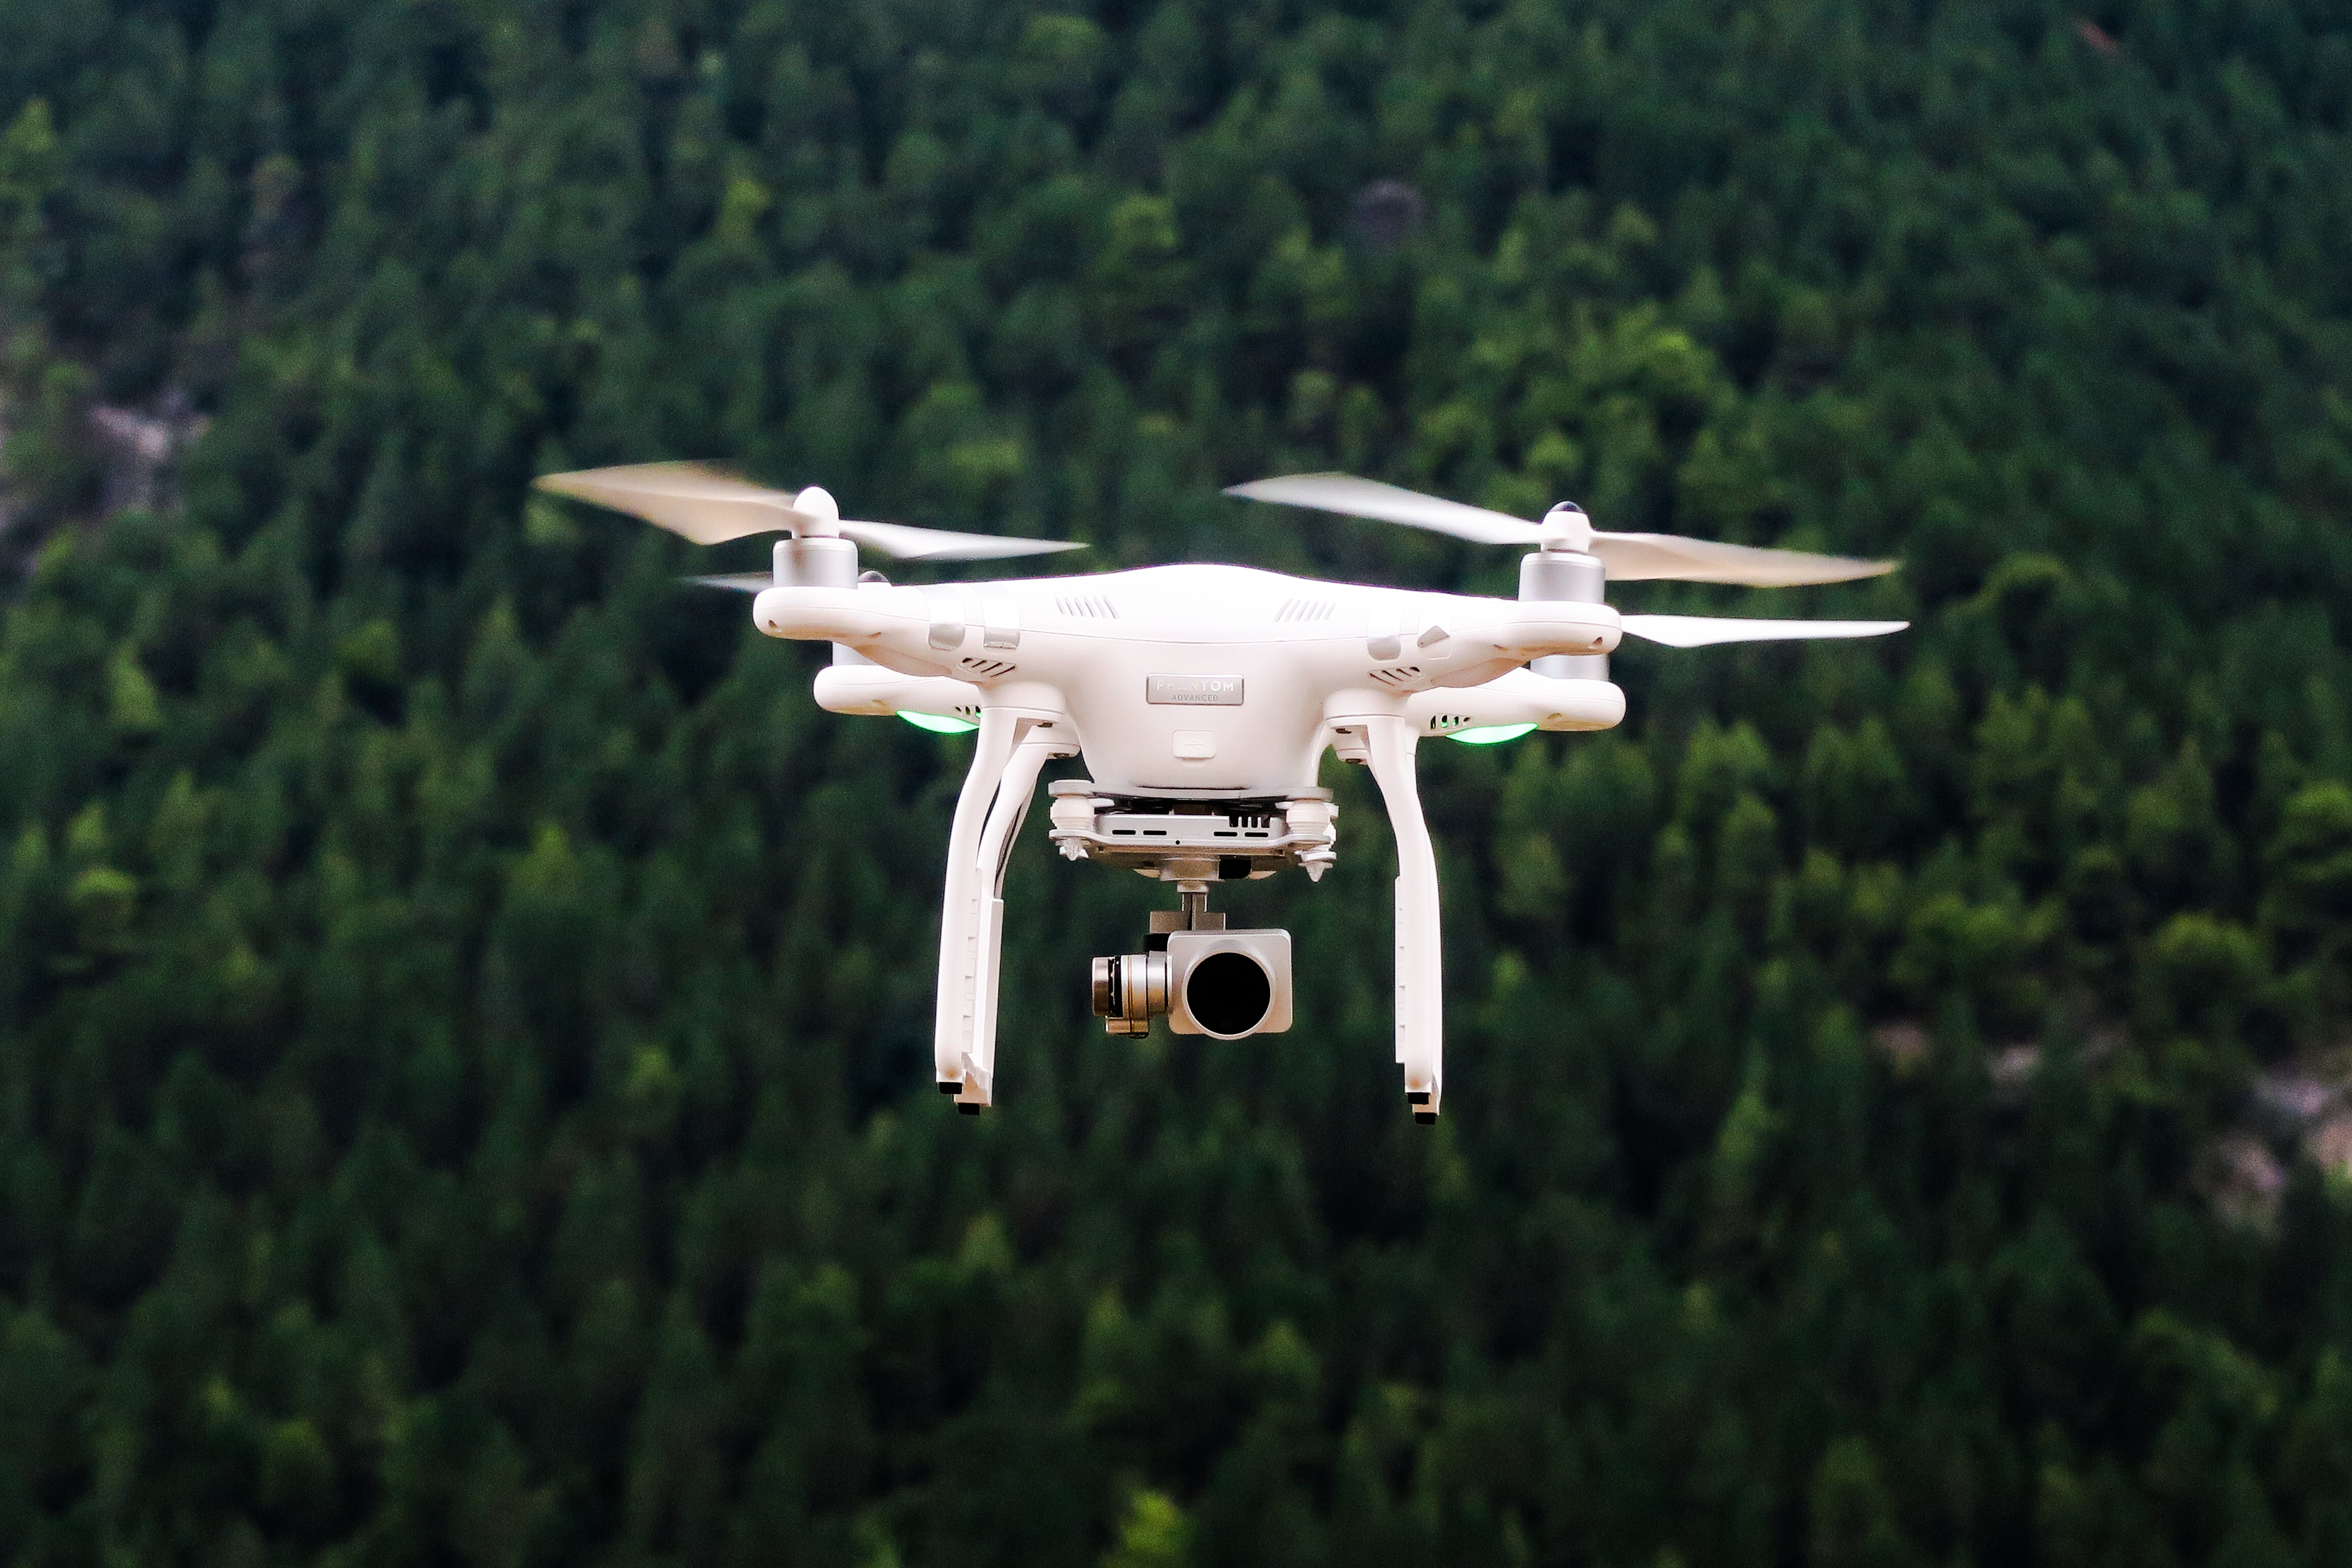 A drone being flown in the forest in Agridi